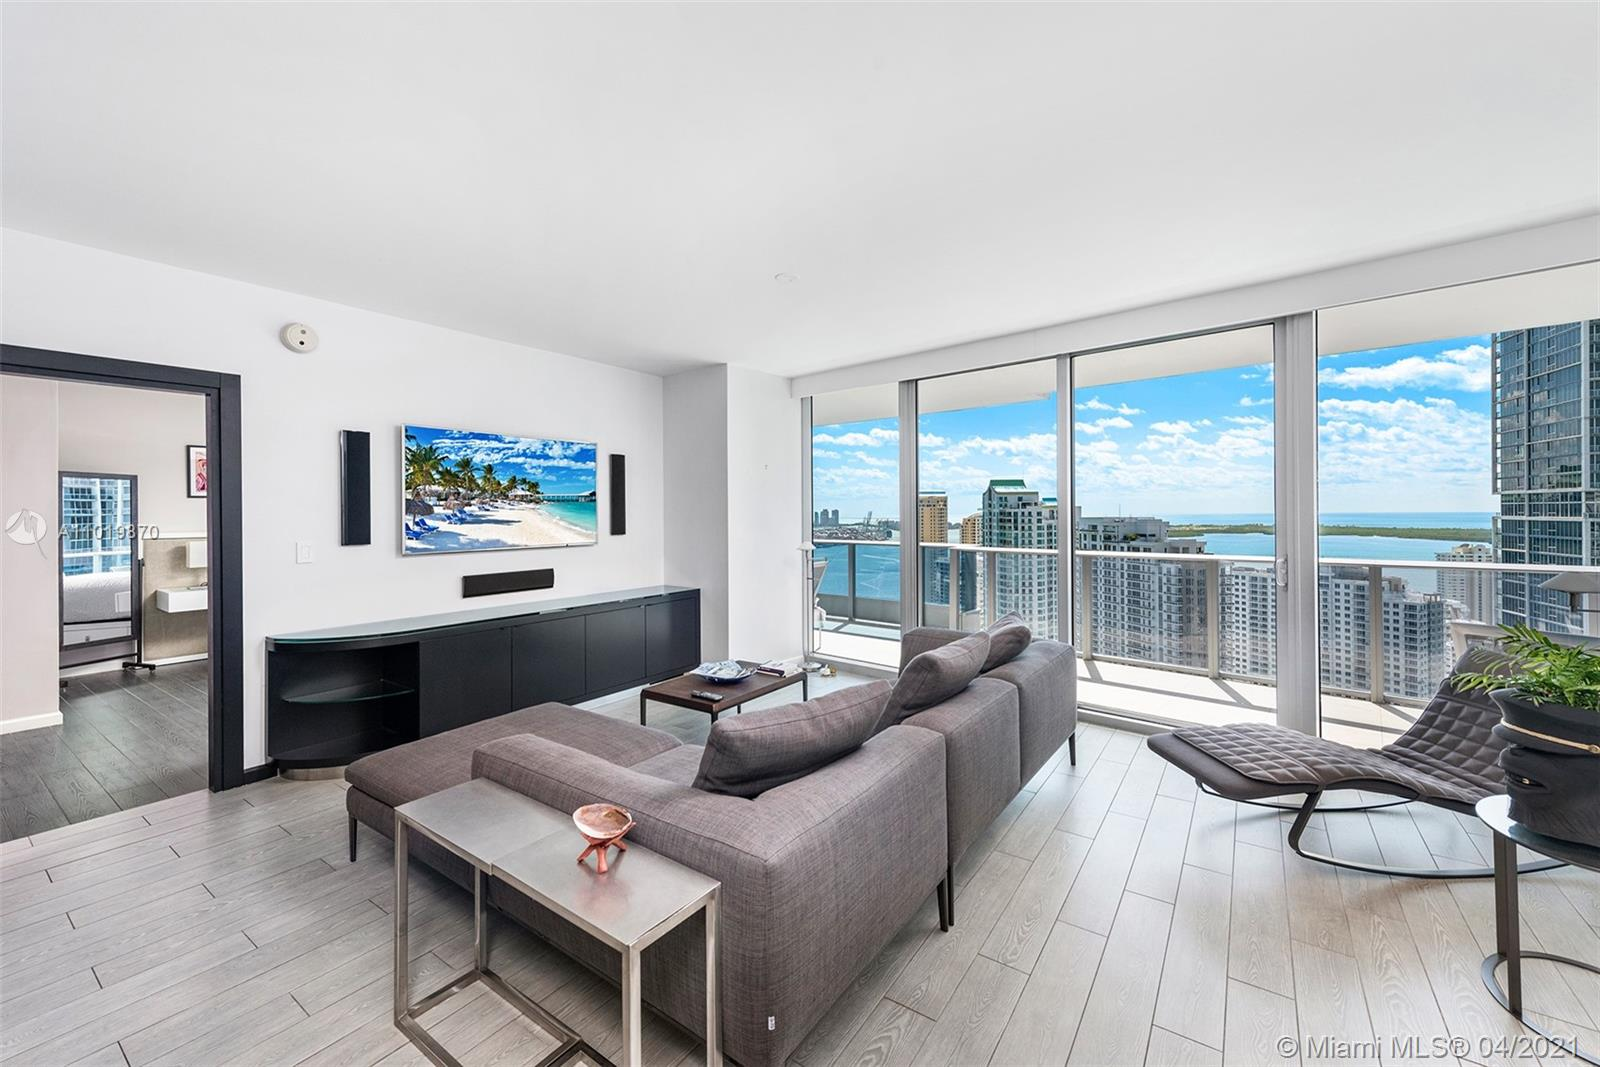 With style and sensibility, this breathtaking residence at the Epic Downtown is something to appreciate. Situated on the desirable '07' line, this 2 BD/2.5 BA Smart Home is rich in upgrades, such as electric blinds, custom build-ins and more. With its abundance of natural light and Southeast exposure, you won't tire of the direct views of bay & skyline from your oversized terrace. The Epic sits on the Miami River between DWNTWN Miami & Brickell, giving it high marks for walkability to top restaurants, retail, parks, cultural events and public transport. Living at the Epic means enjoying first class luxuries, a top rated restaurant (Zuma), Marina, 2 pools, gym, spa, valet and concierge. Bringing your pet? The Epic is very pet friendly. 2 parking spaces are included. Come see for yourself.